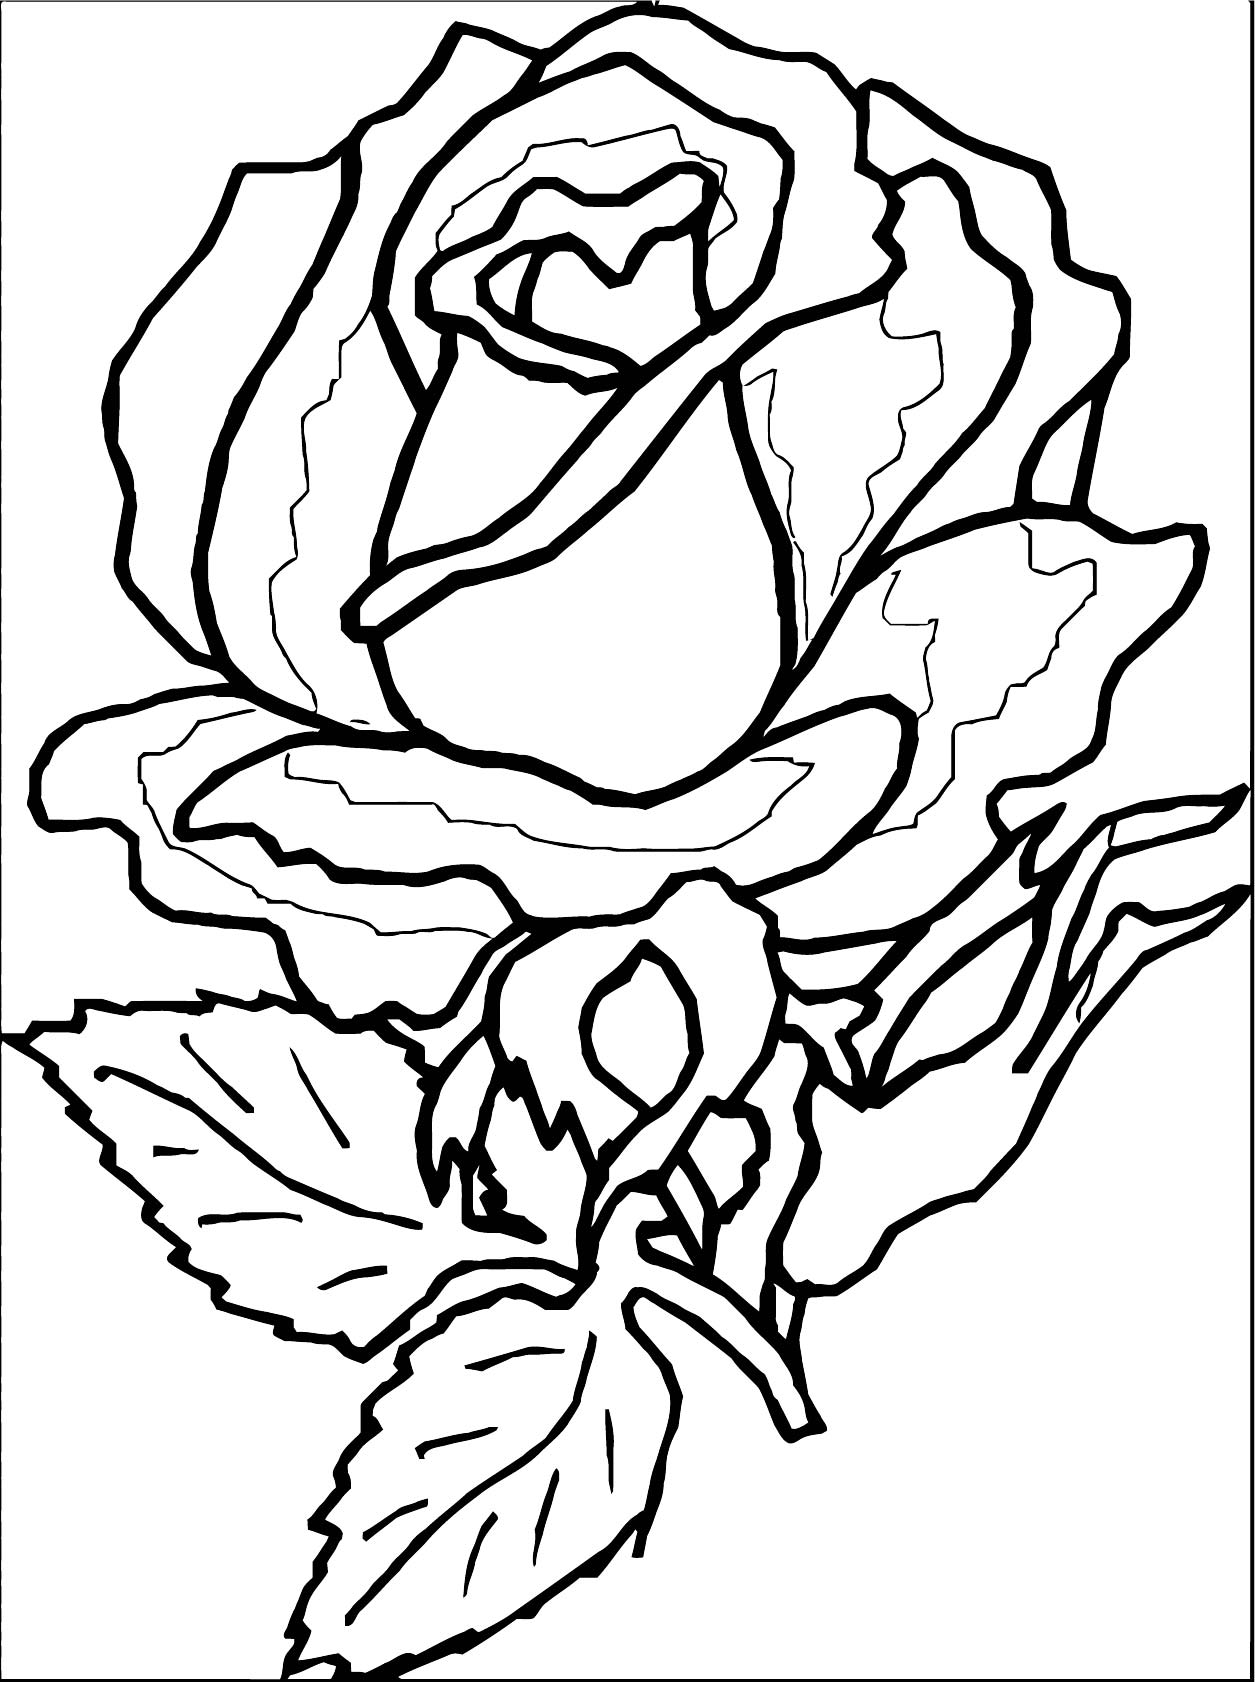 Rose Flower Coloring Page 069